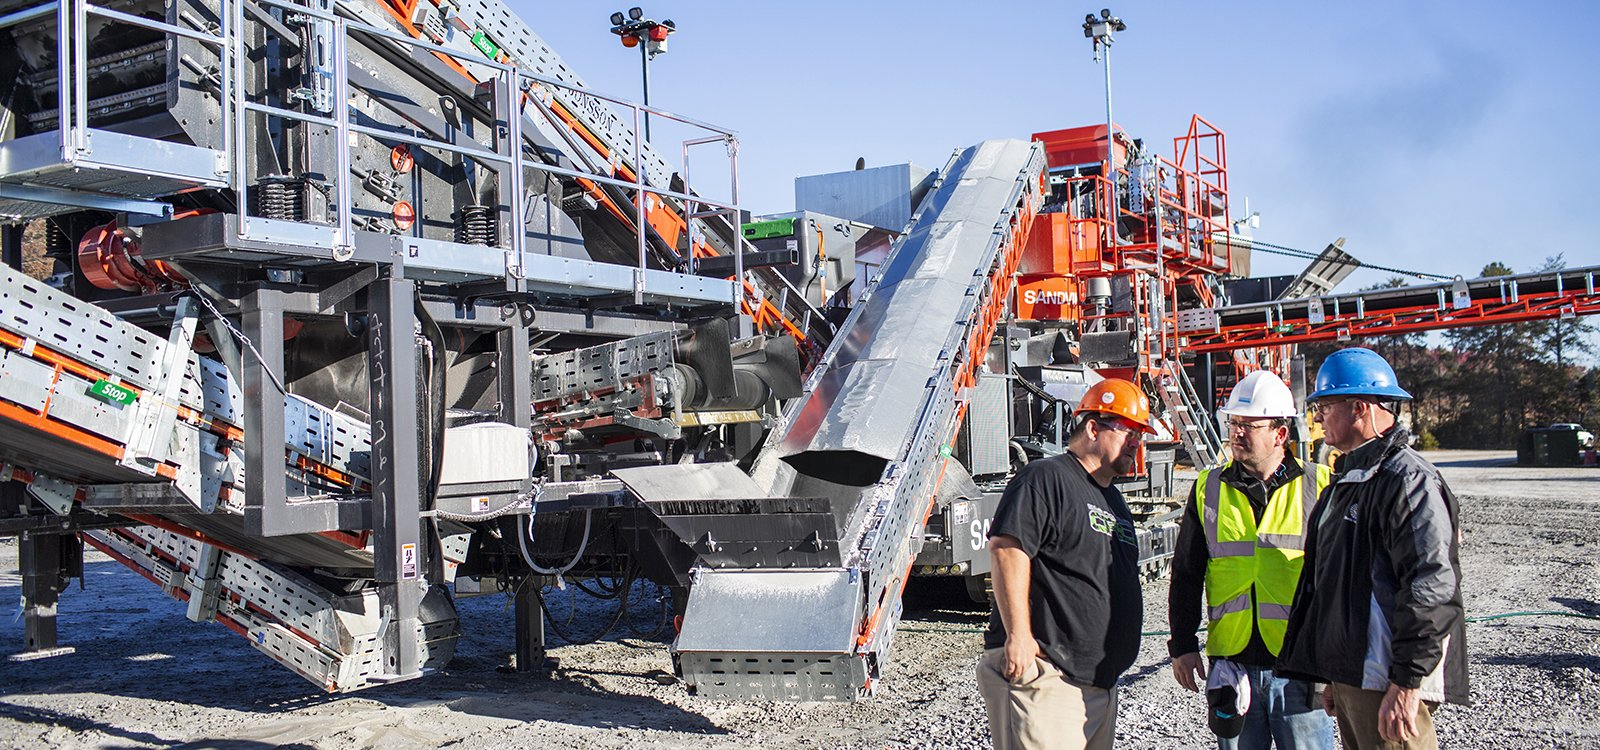 The quarry invested in a mobile plant primarily because it provides pit design flexibility.